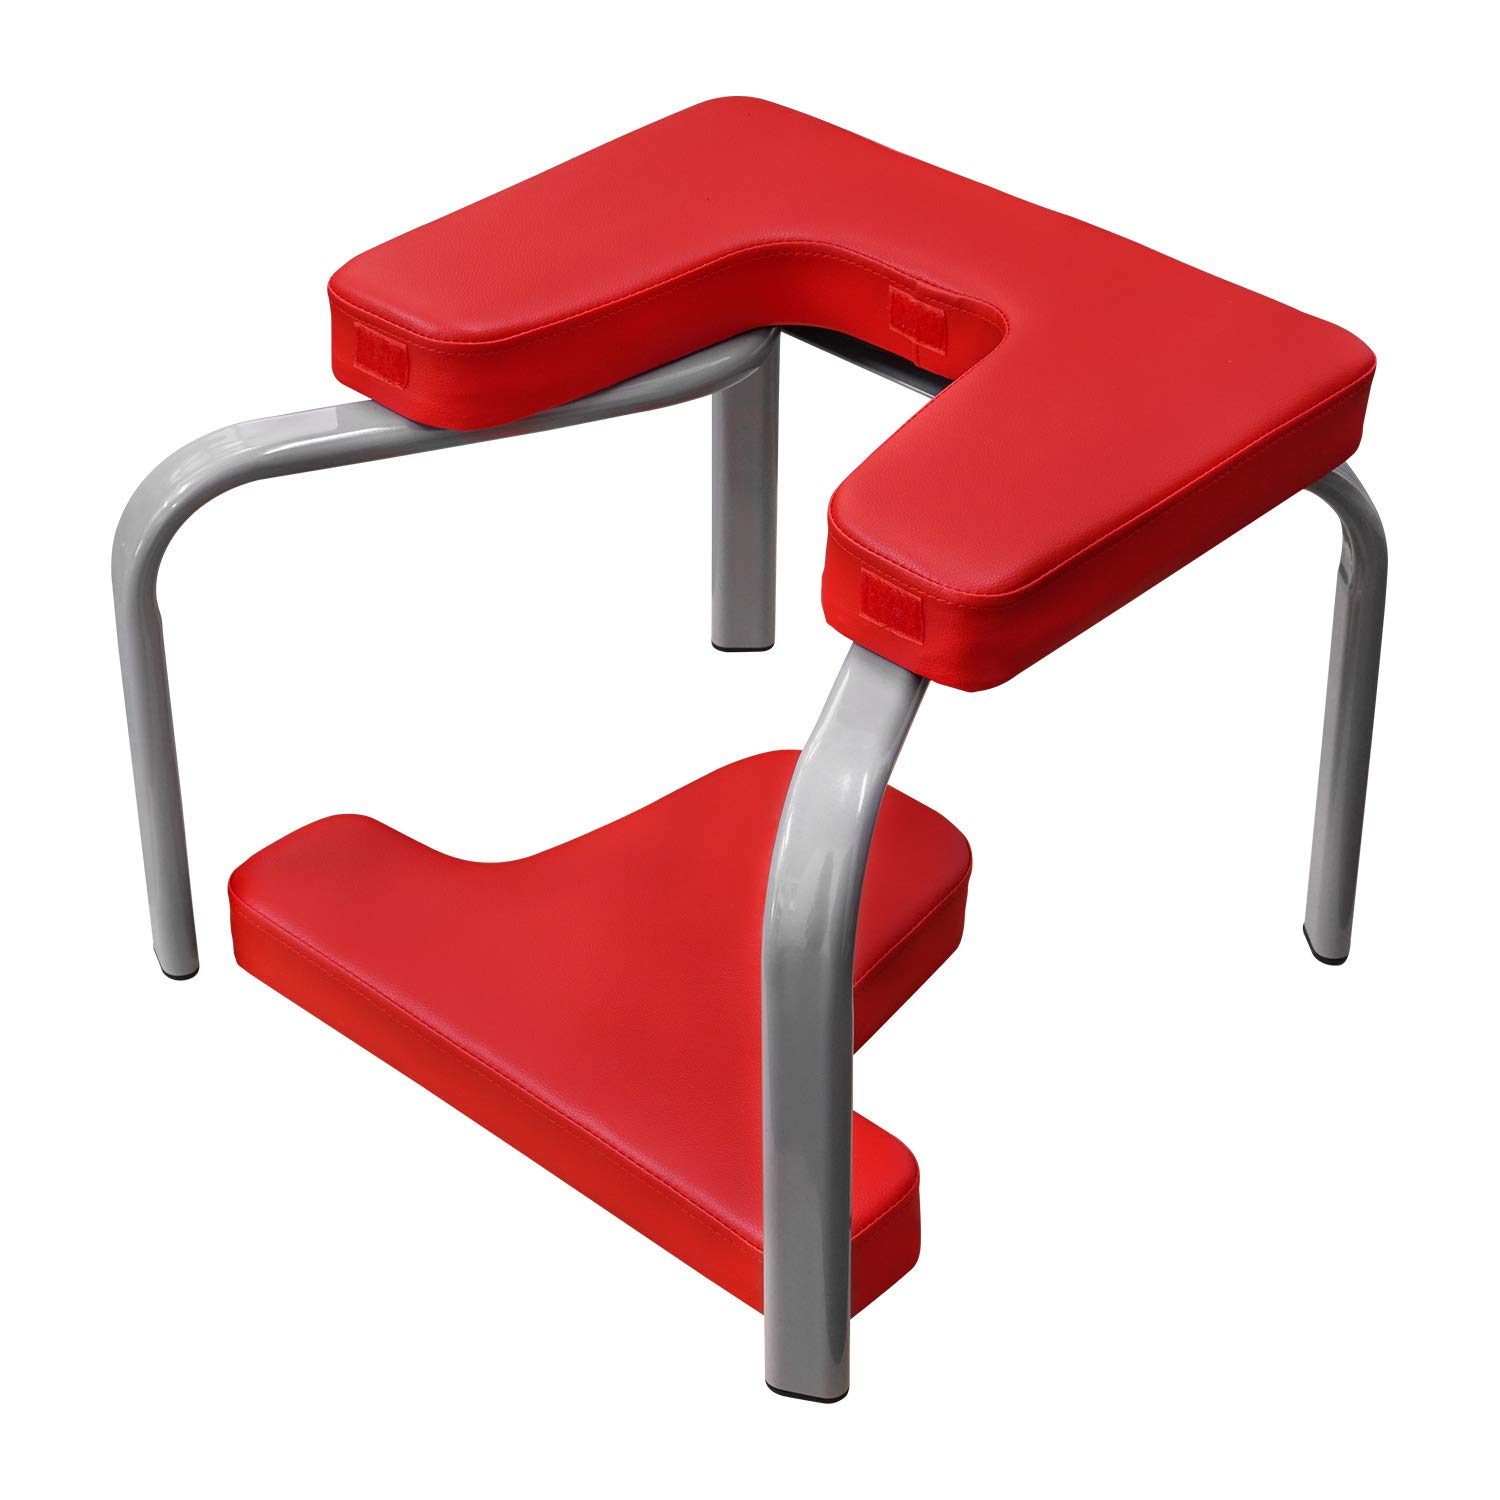 Veocore Yoga Chair Upside Down Inversion Bench U-Shaped Stool Gym Exercise-Red